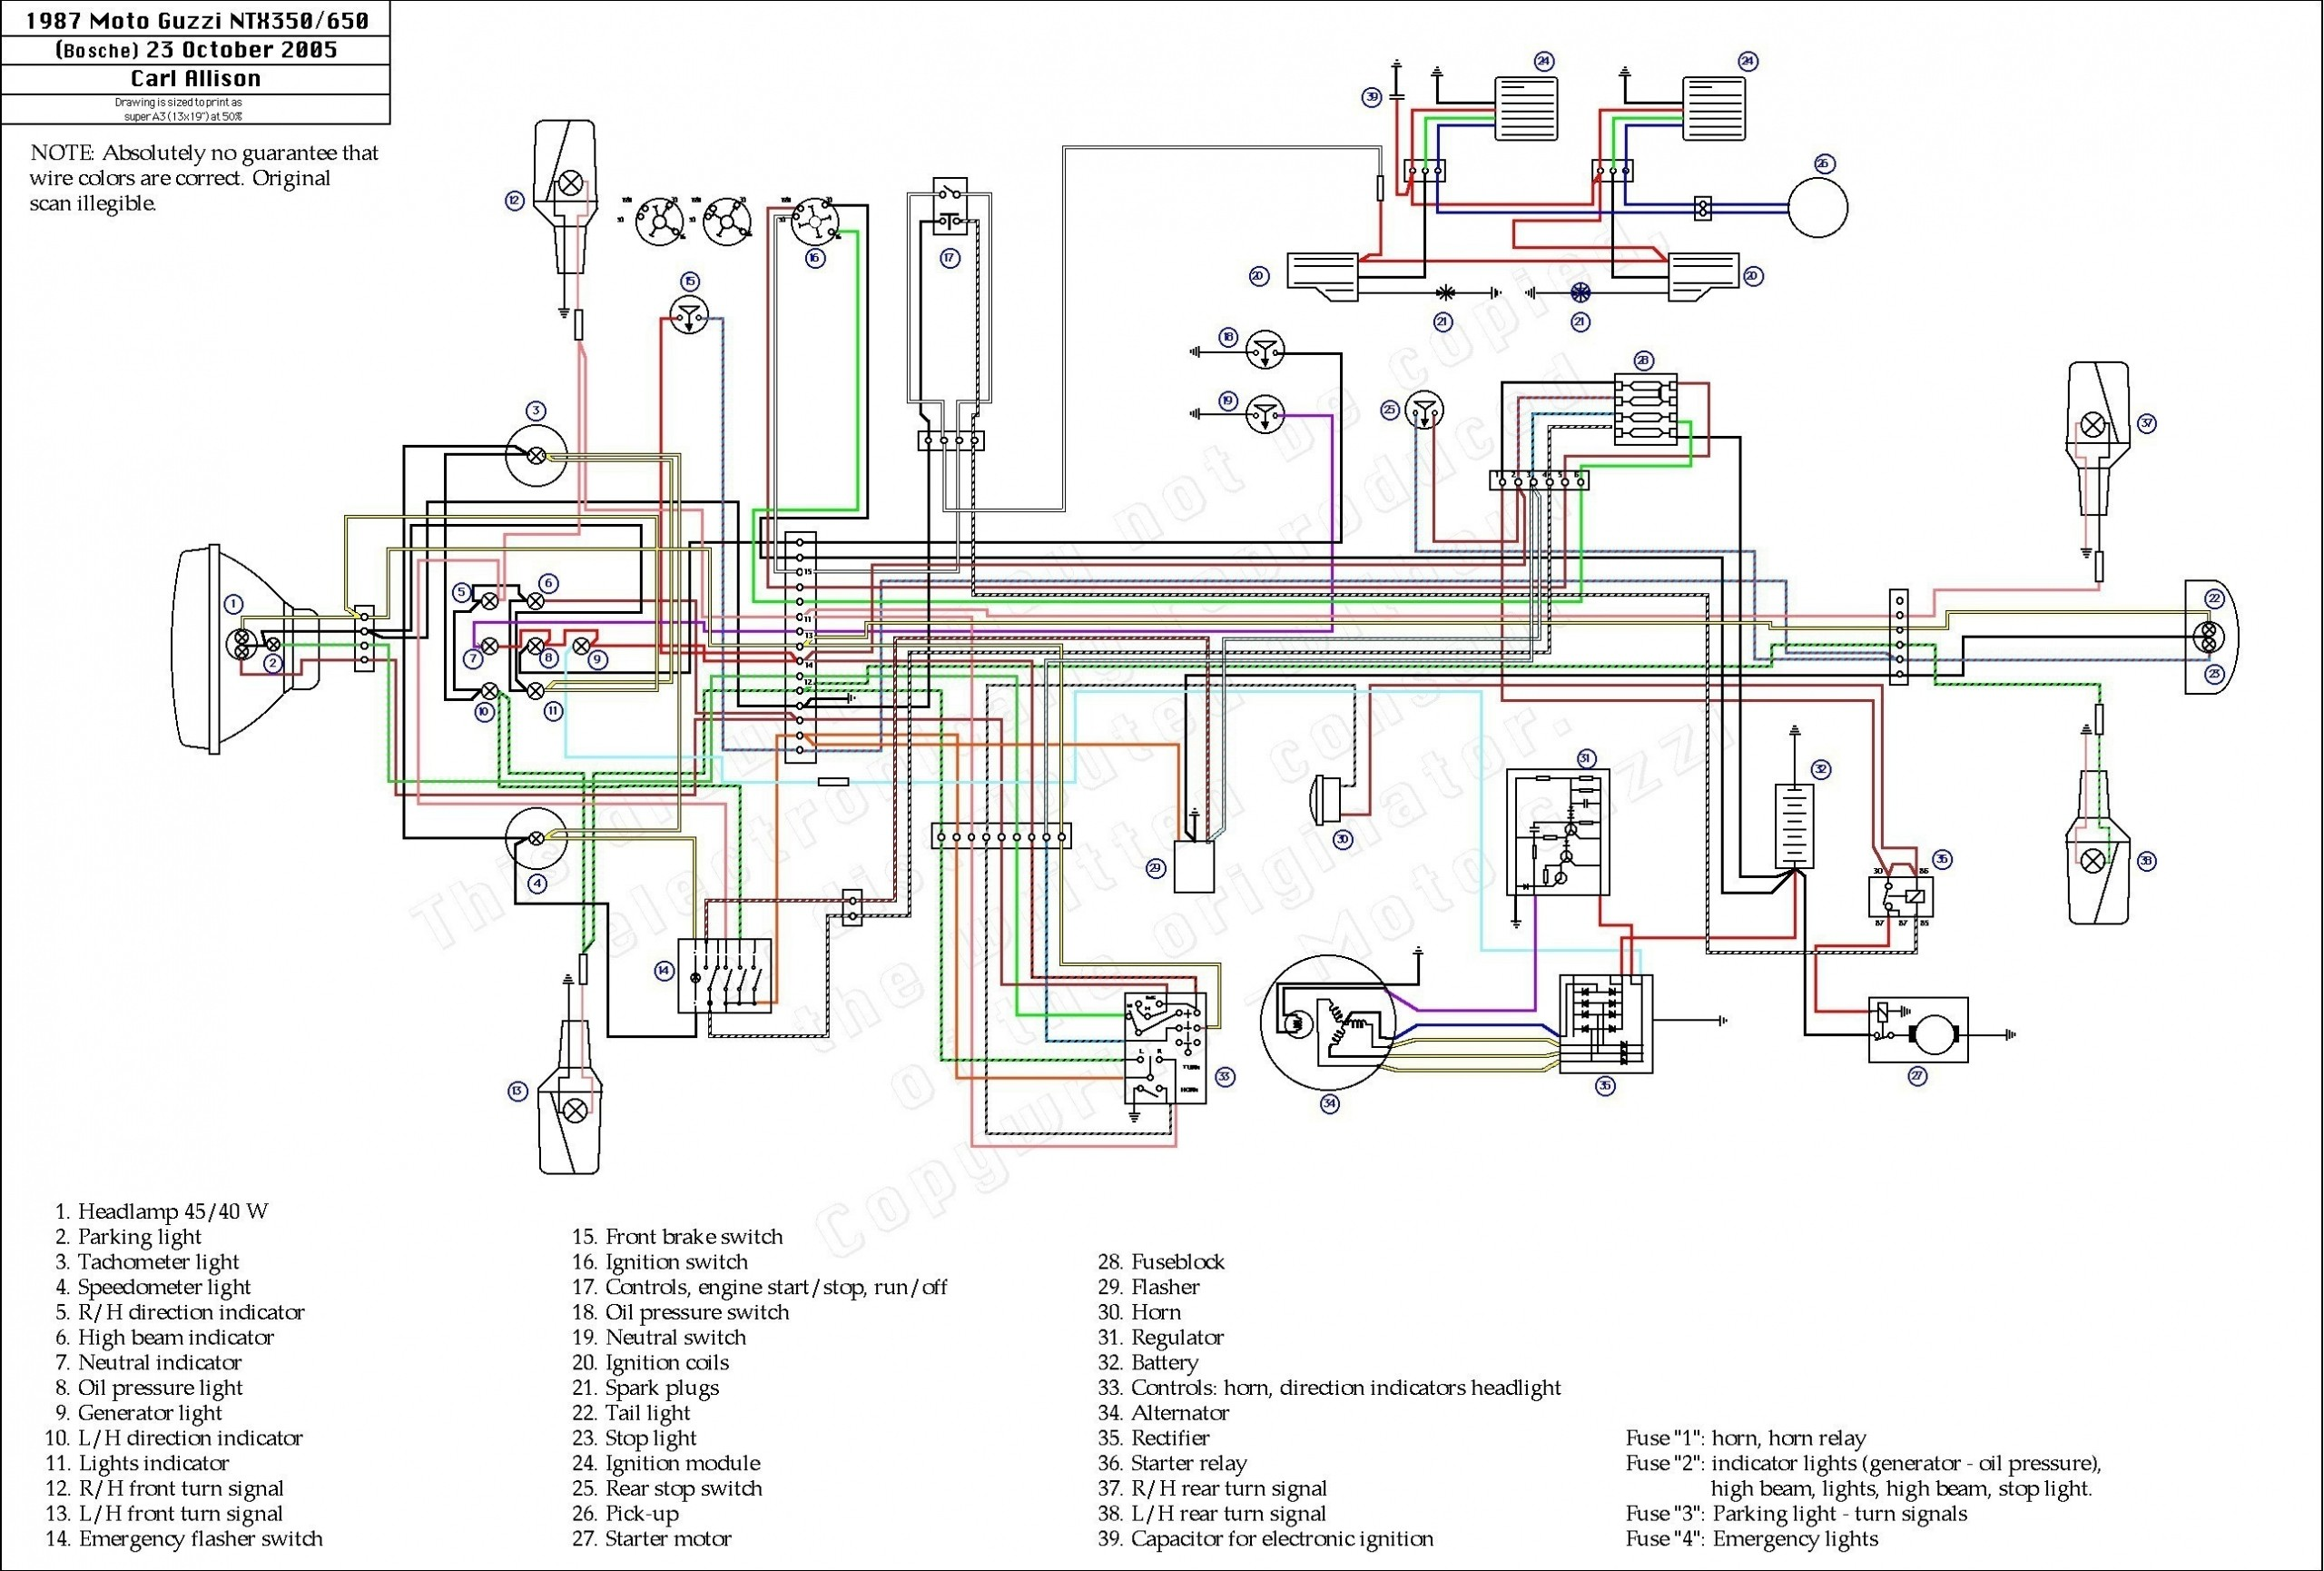 Wiring Diagram for 110cc Chinese atv Diagram] 2007 110cc Chinese atv Wiring Diagram Full Version Of Wiring Diagram for 110cc Chinese atv